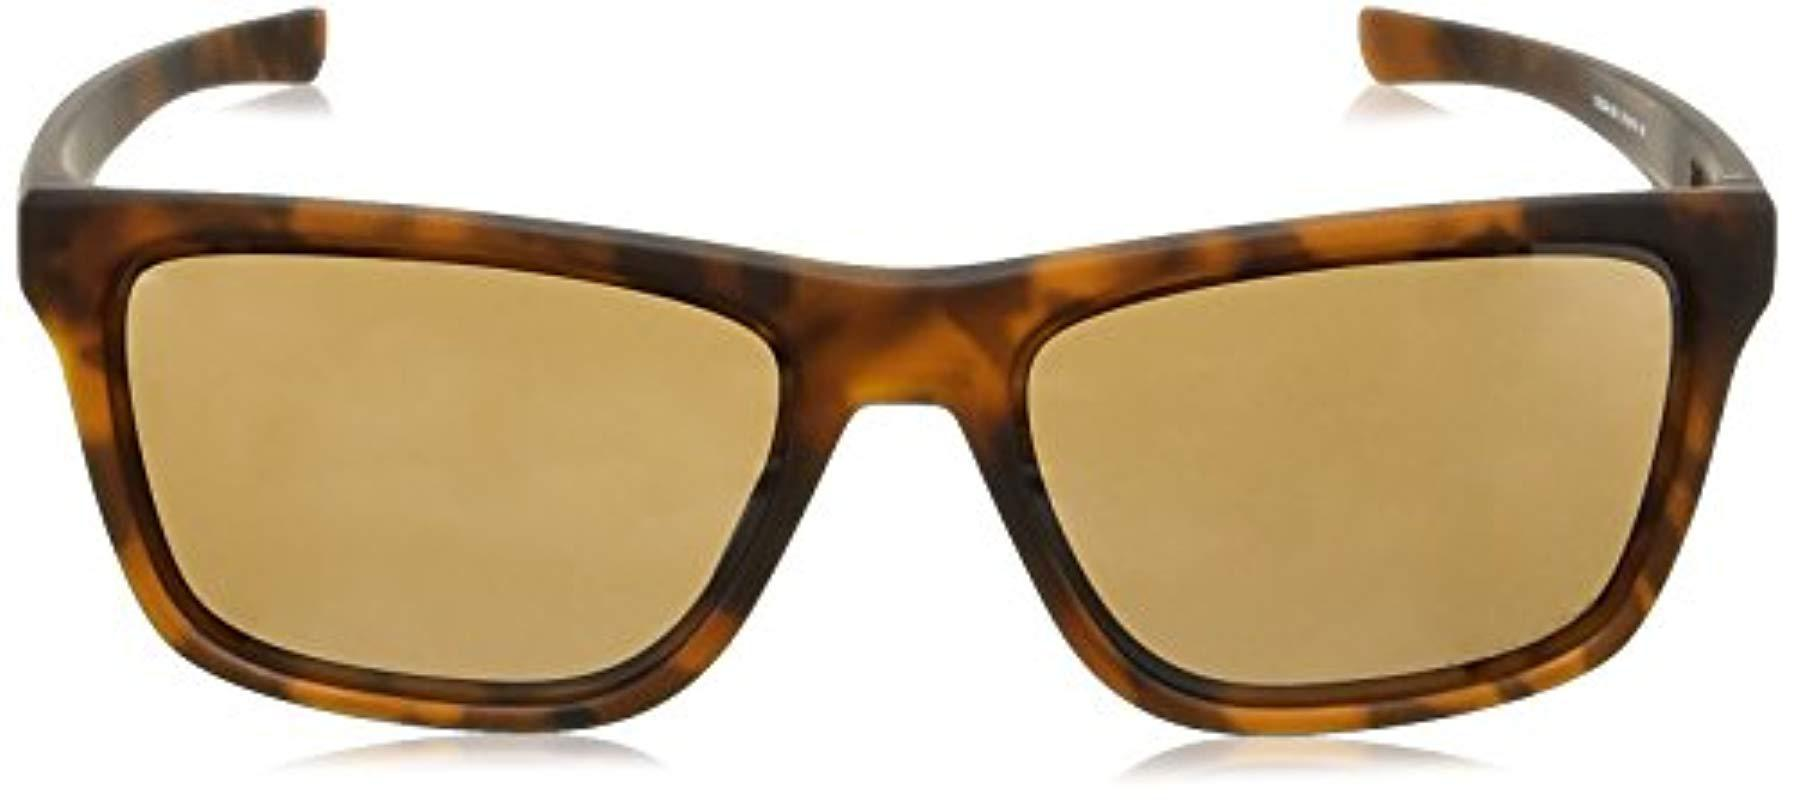 Ray-Ban Holston Sunglasses, Brown (marrón), 57 in Brown for Men - Lyst 791e038dd4fe